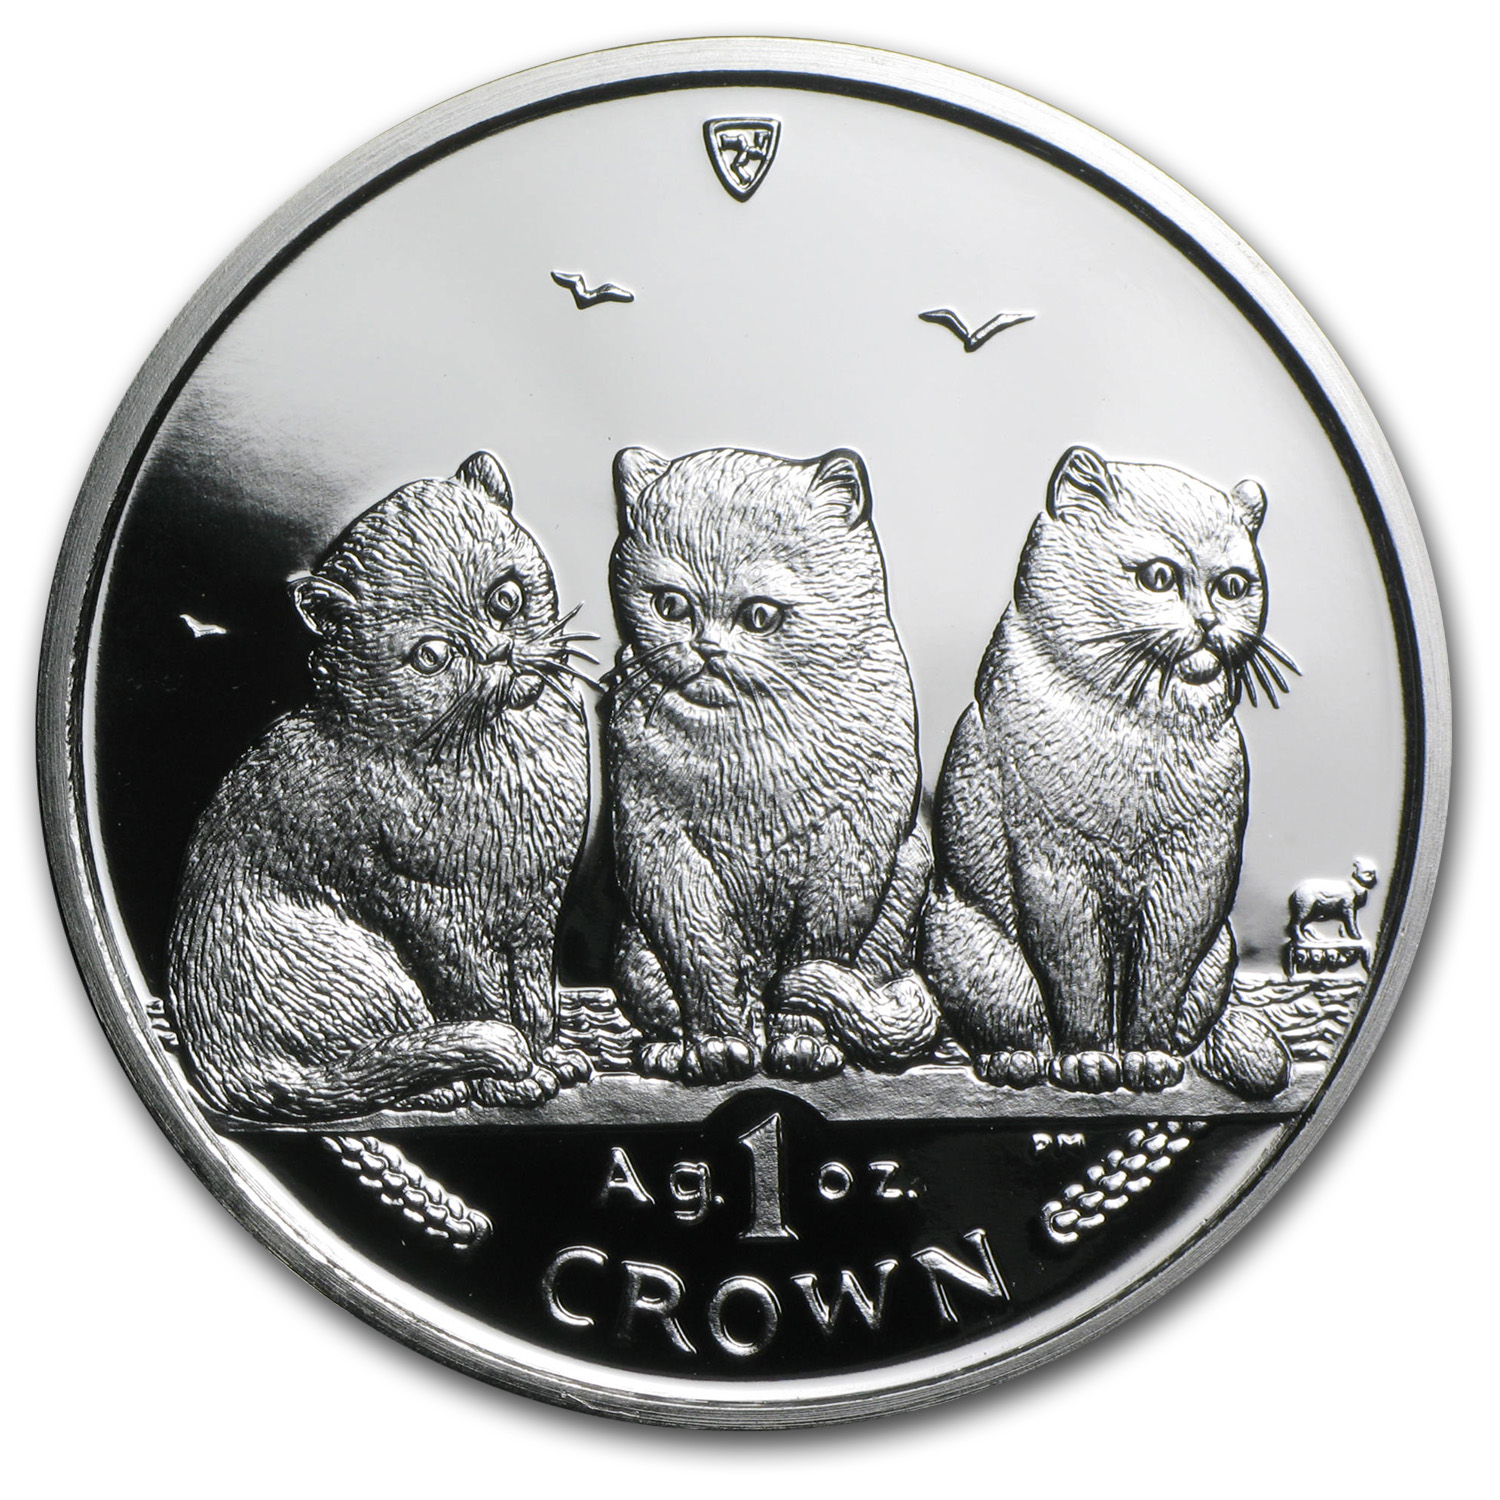 2006 Isle of Man Silver 1 Crown Shorthair Cats Proof